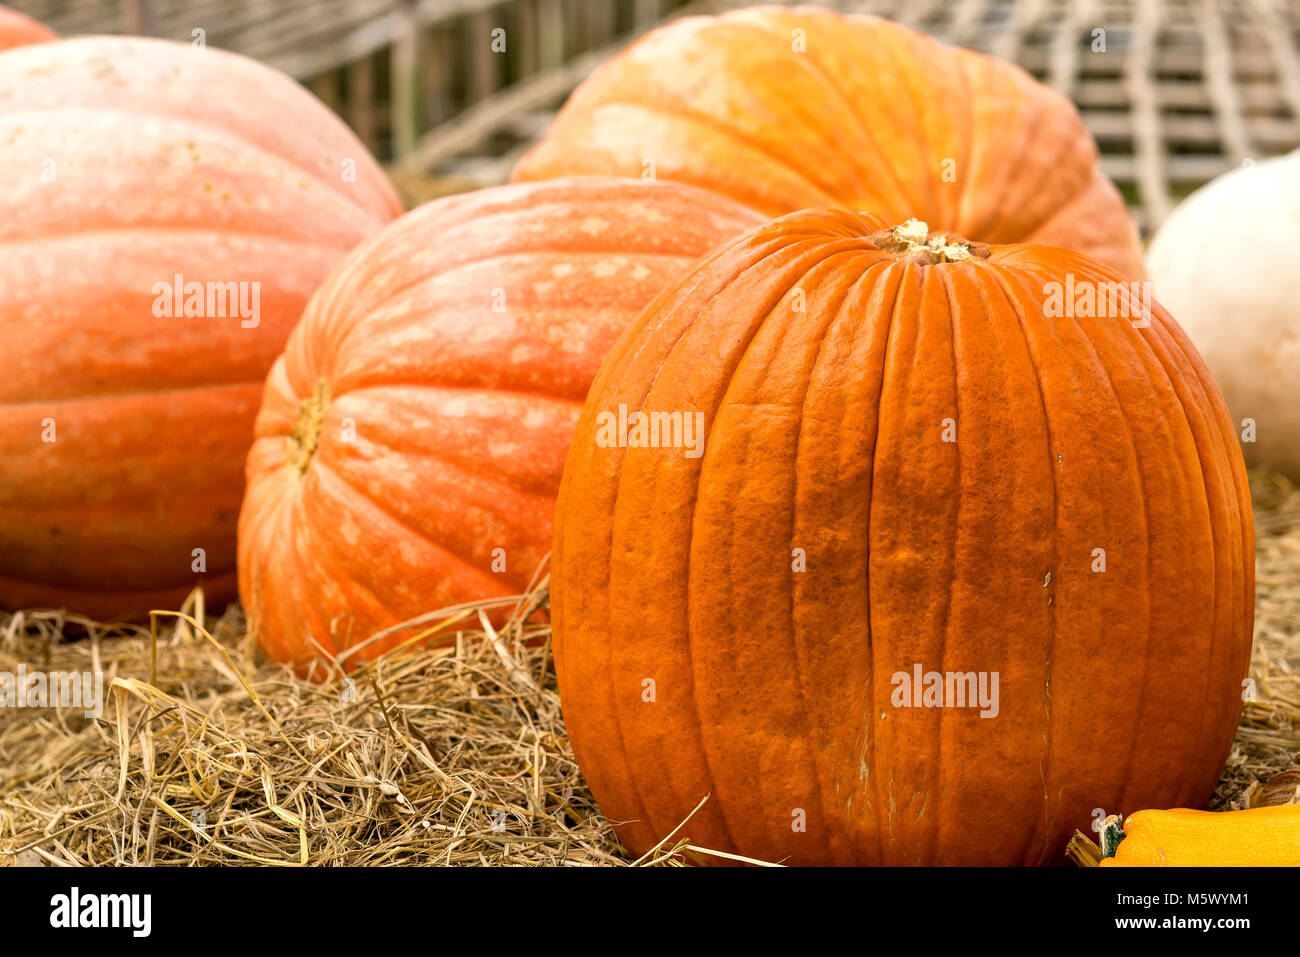 The giant pumpkins in the garden both make the scene as food. This food is very rich in vitamins, iron, mineral - Stock Image